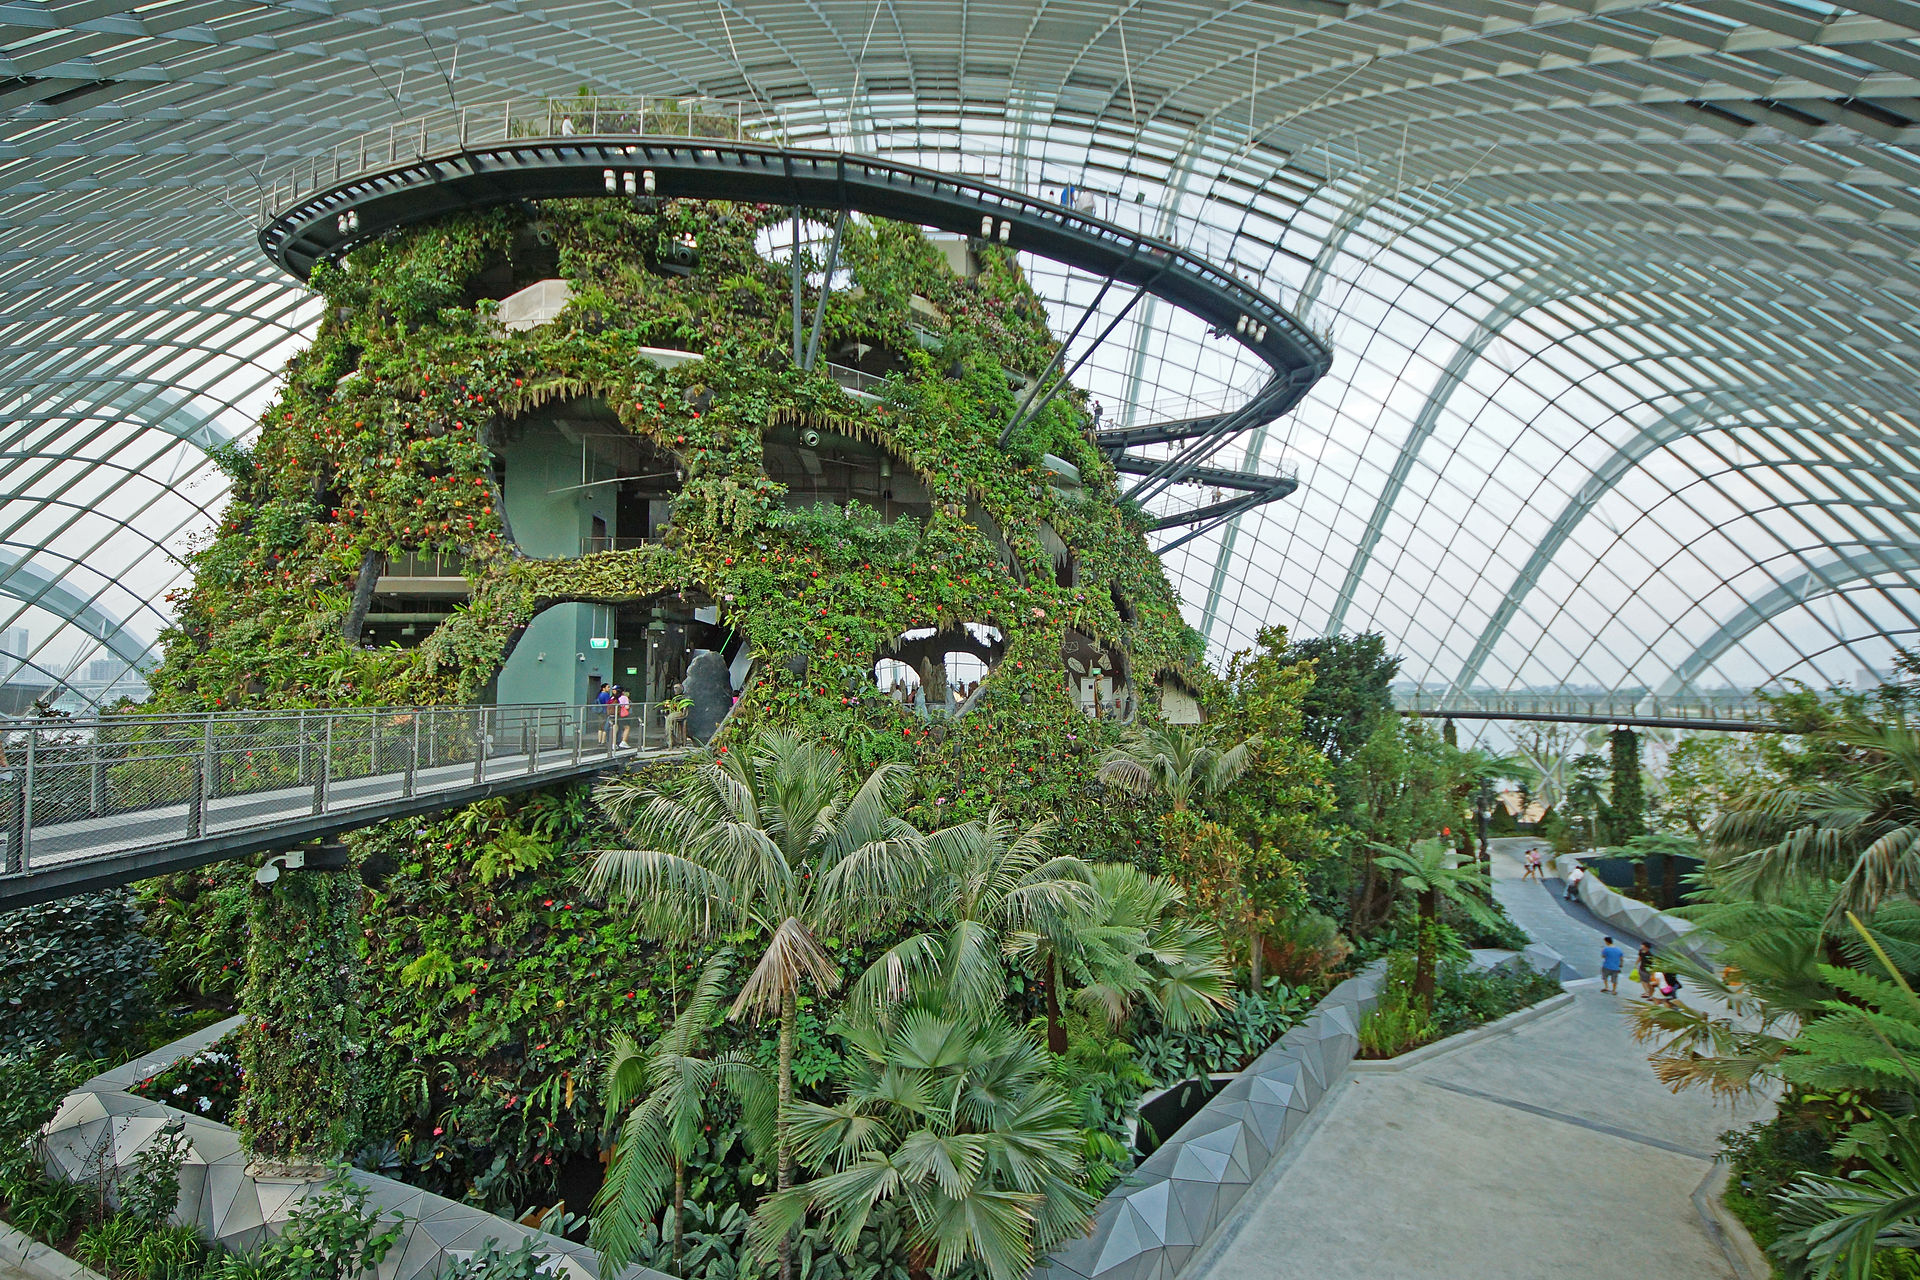 Cloud_Forest,_Gardens_by_the_Bay,_Singapore_-_20120617-05